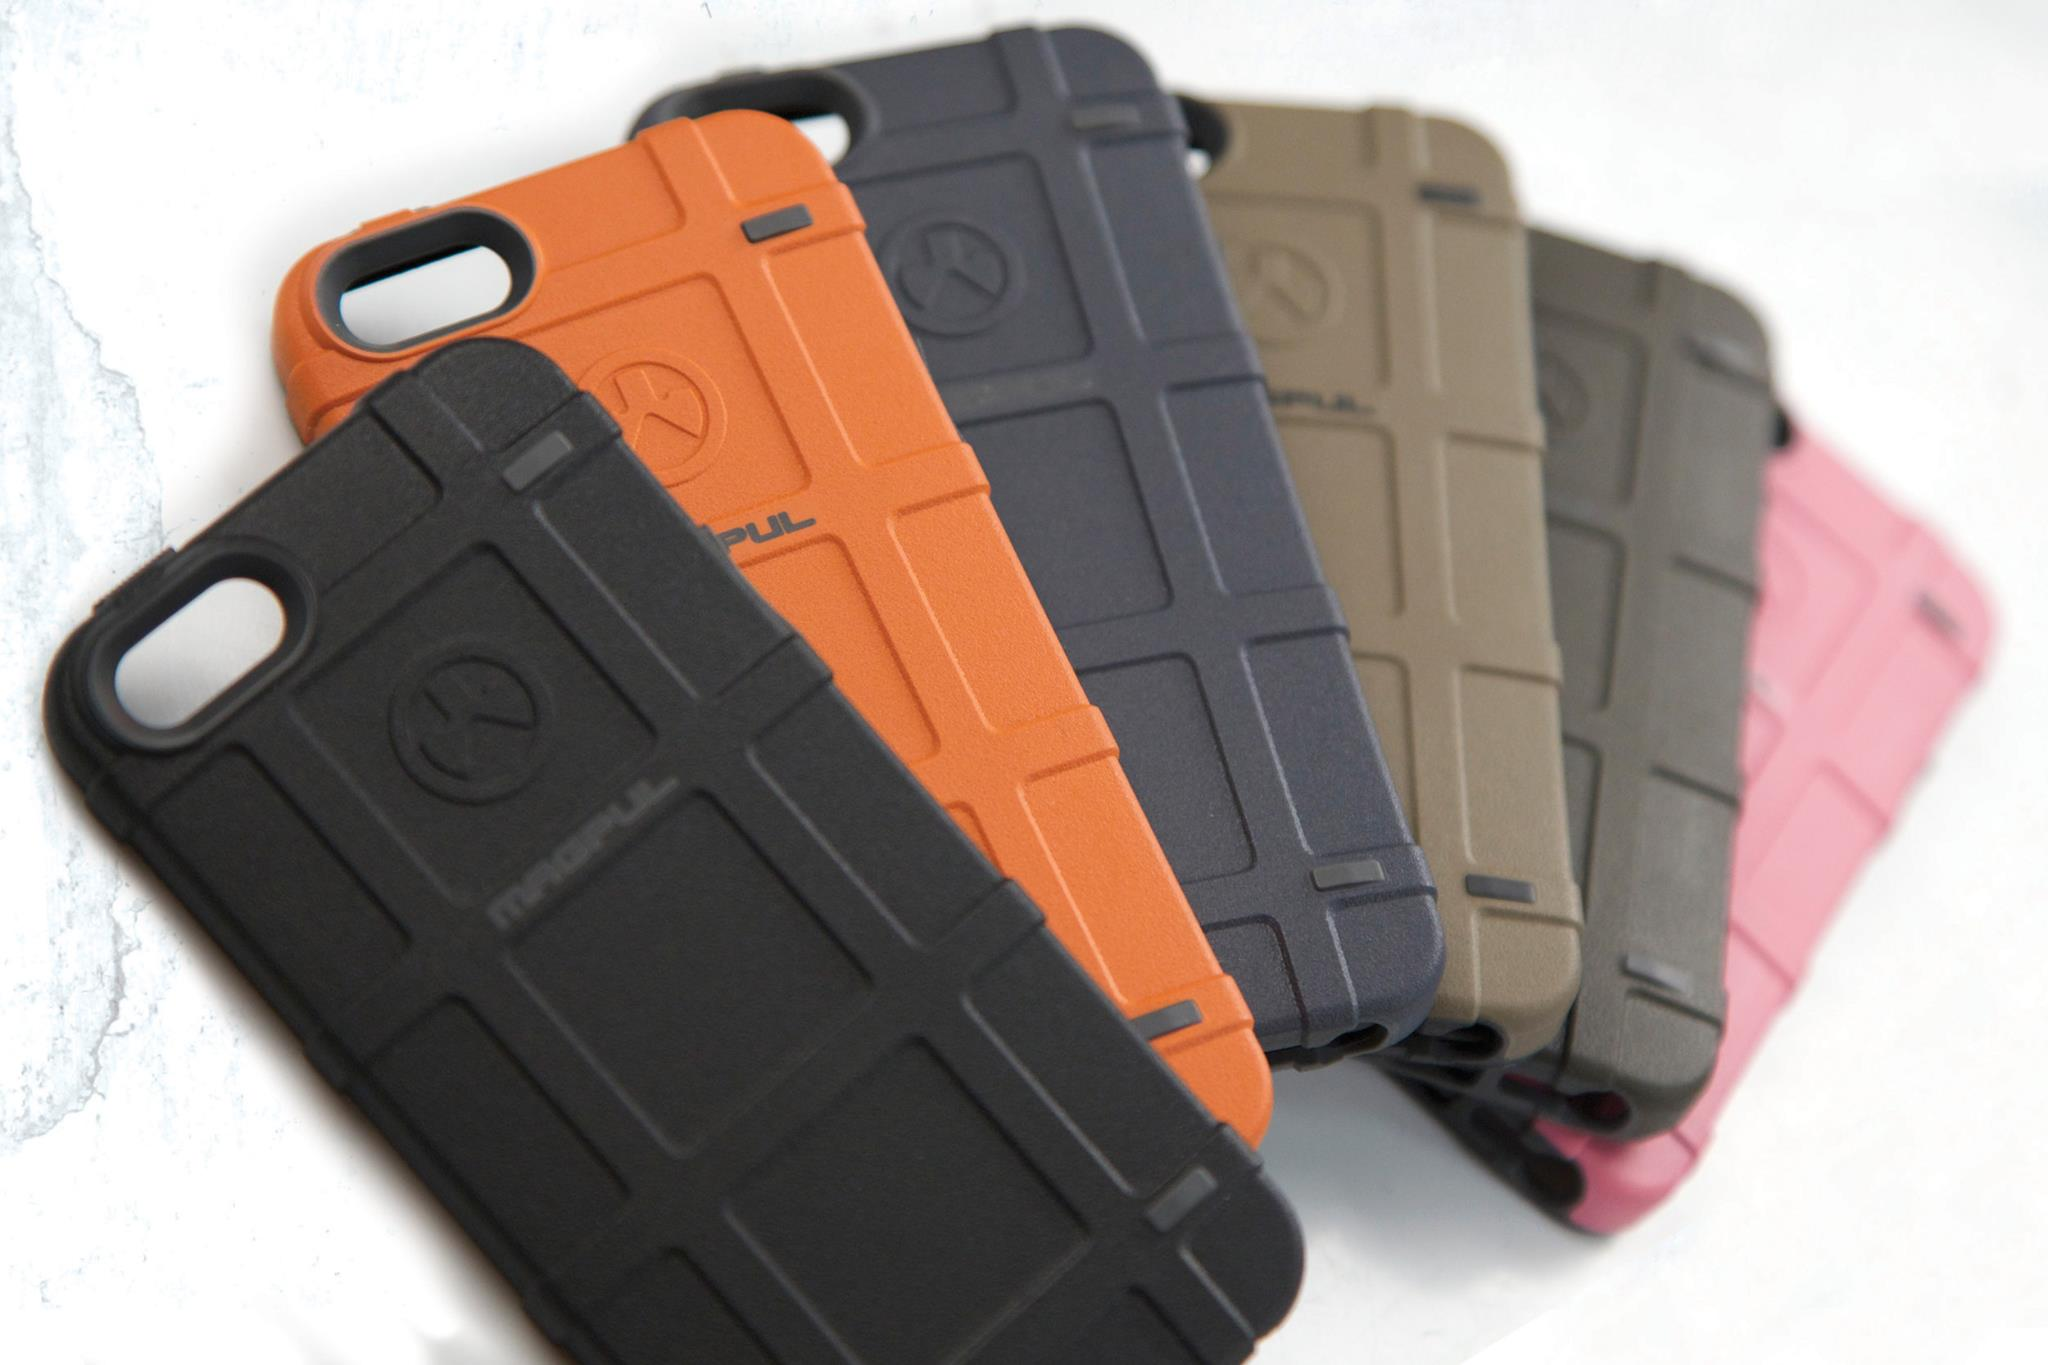 Magpul Bump Case for iPhone 5s (image 001)